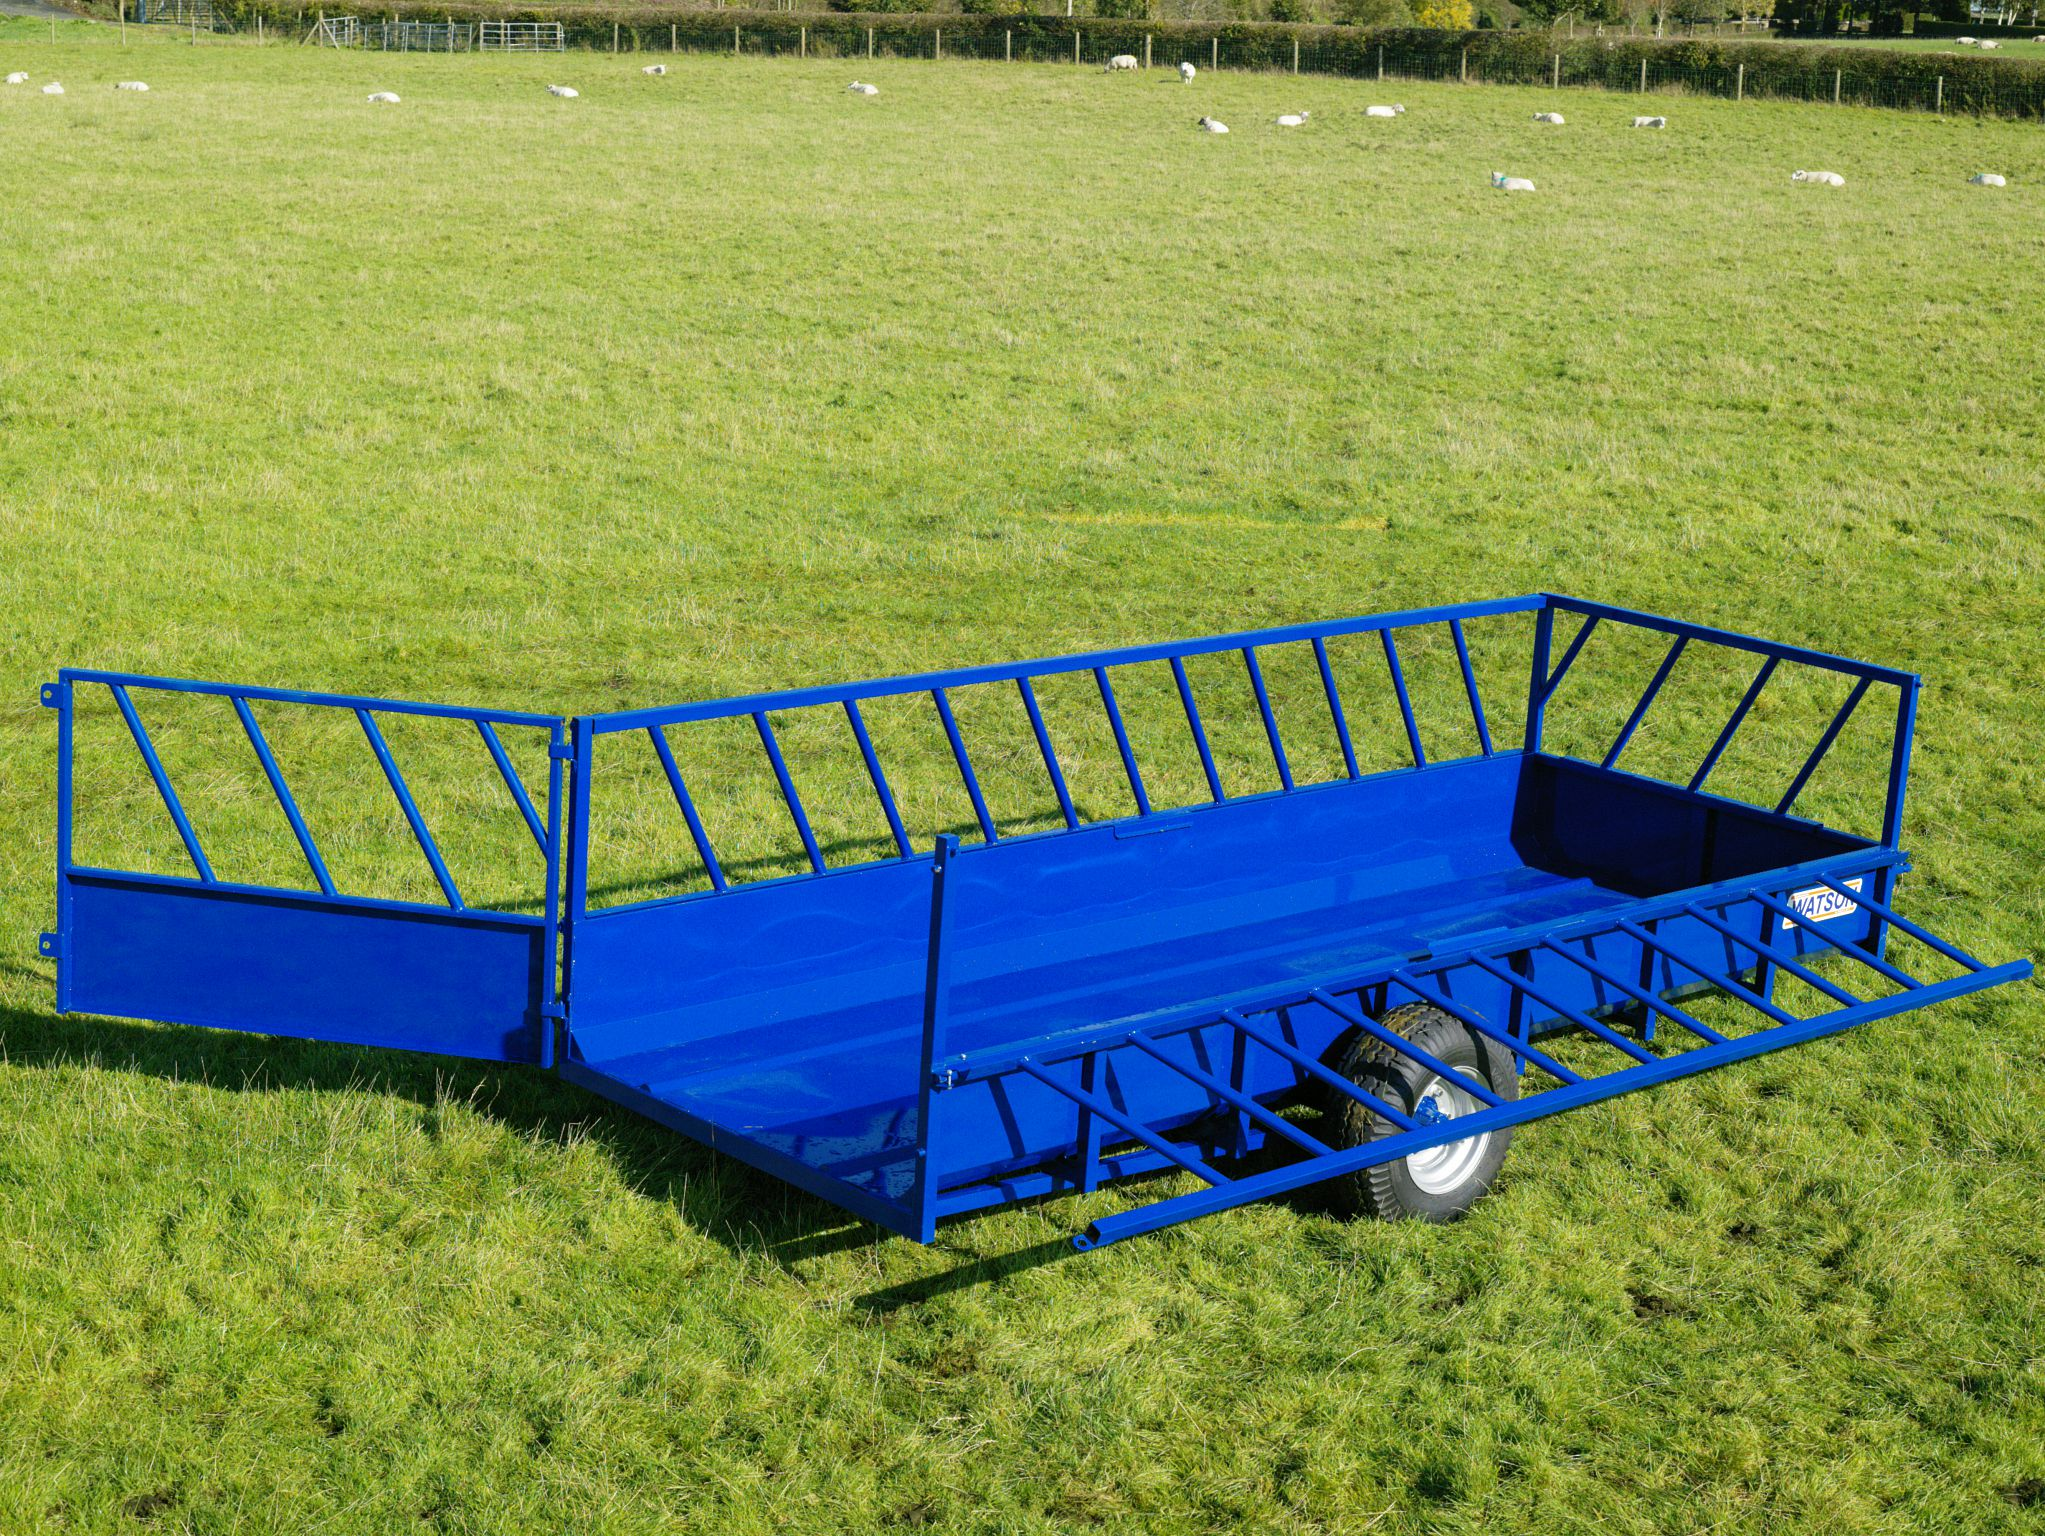 Walter Watson 20ft x 5ft Feeding Trailer